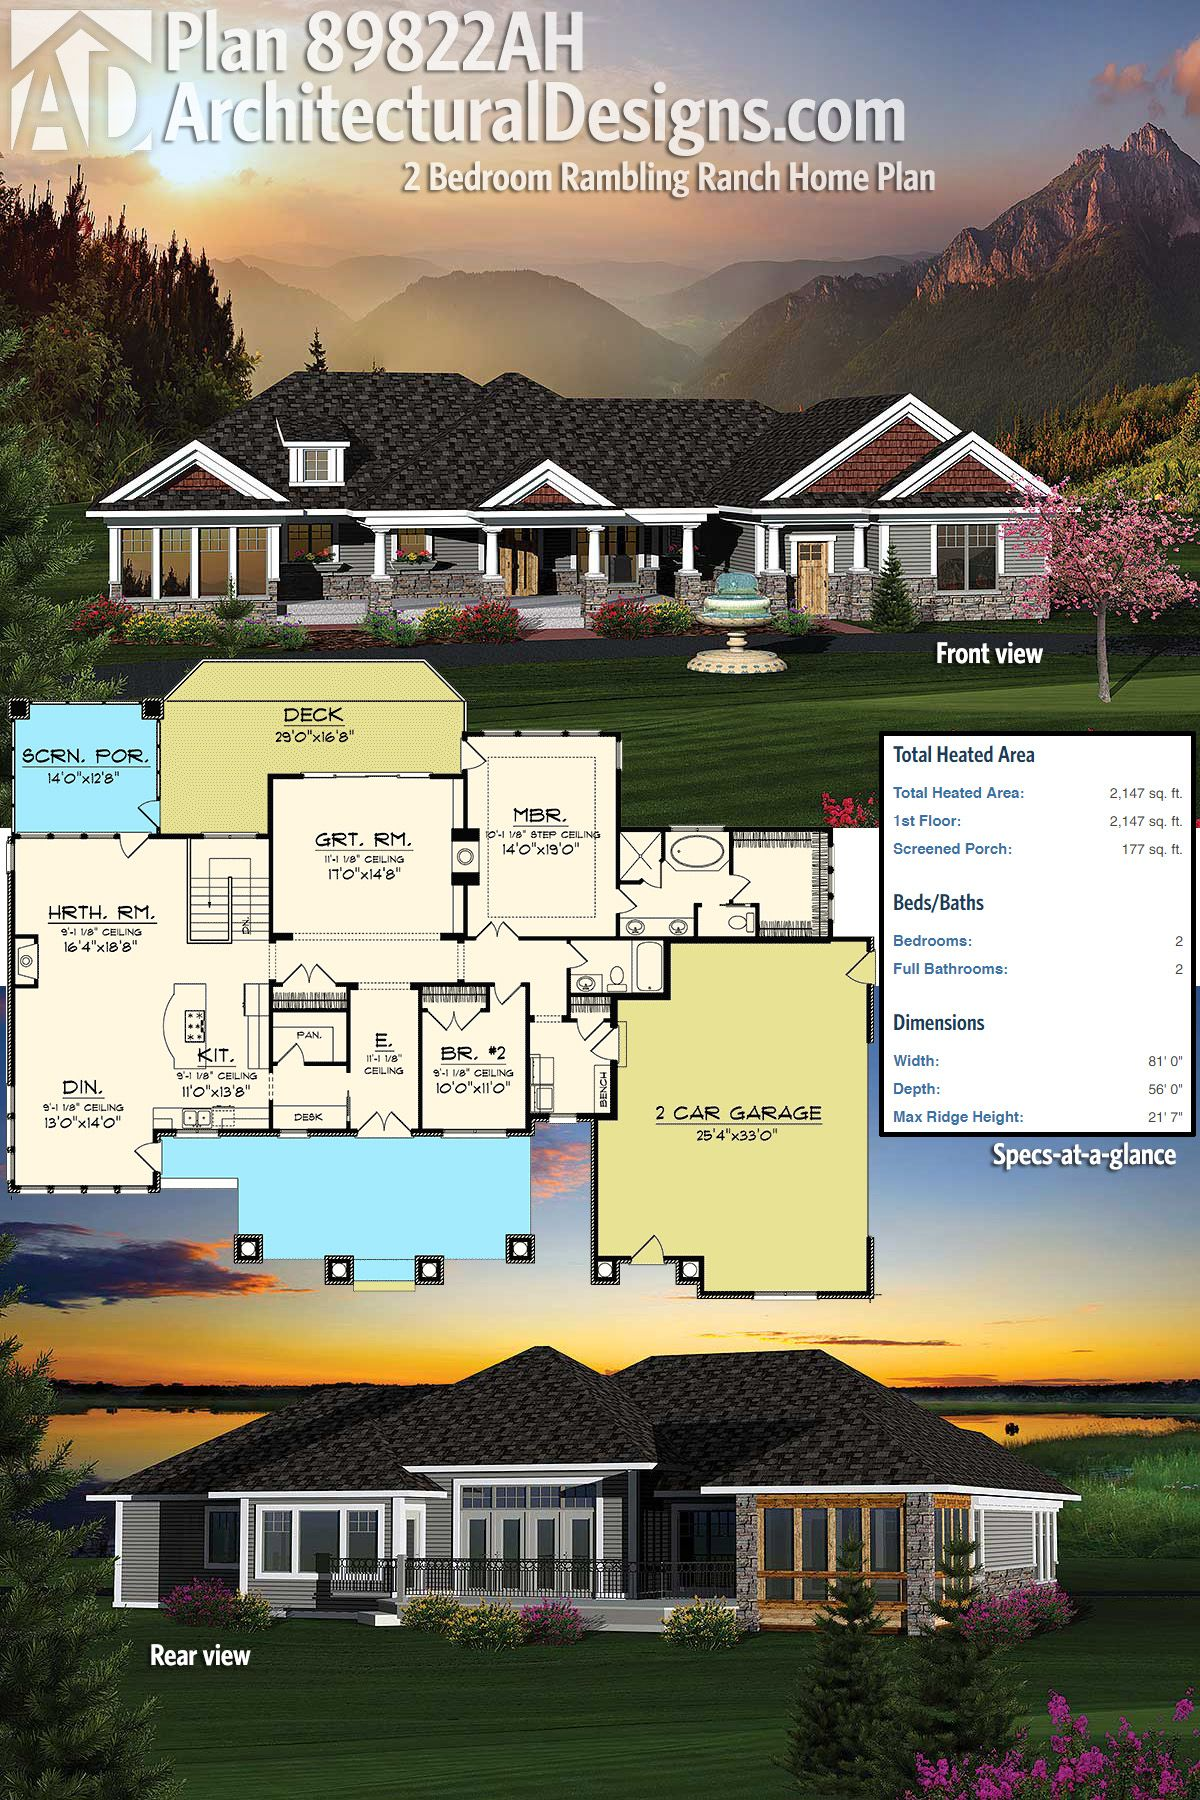 Architectural Designs 2 Bed Rambler House Plan gives you over 2 100     Architectural Designs 2 Bed Rambler House Plan gives you over 2 100 square  feet of one story living  Ready when you are  Where do YOU want to build